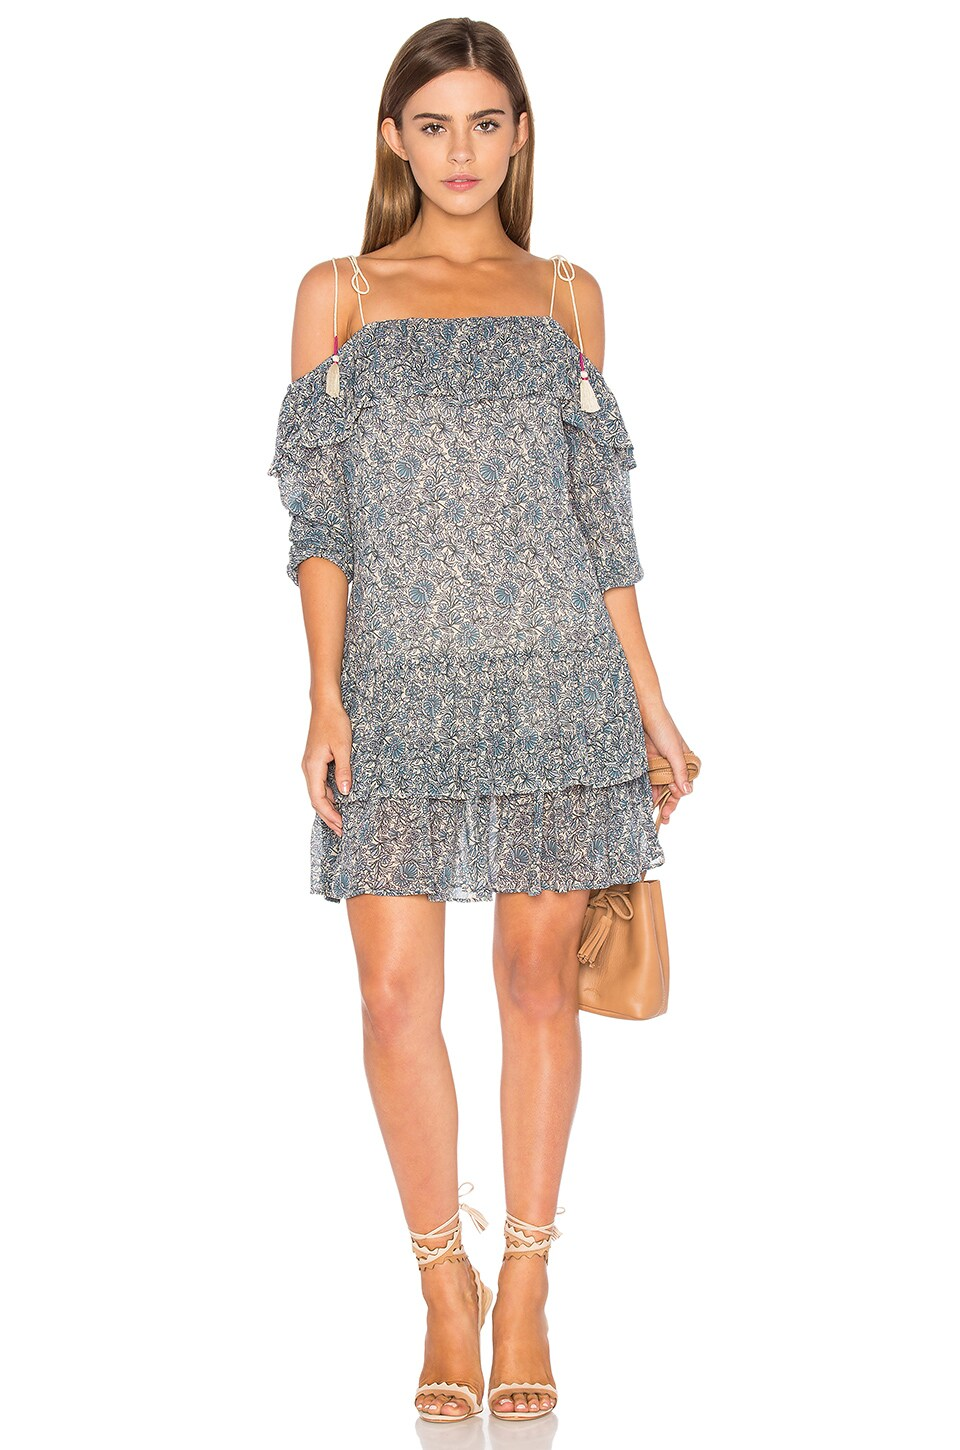 Dexter Dress by Rebecca Minkoff